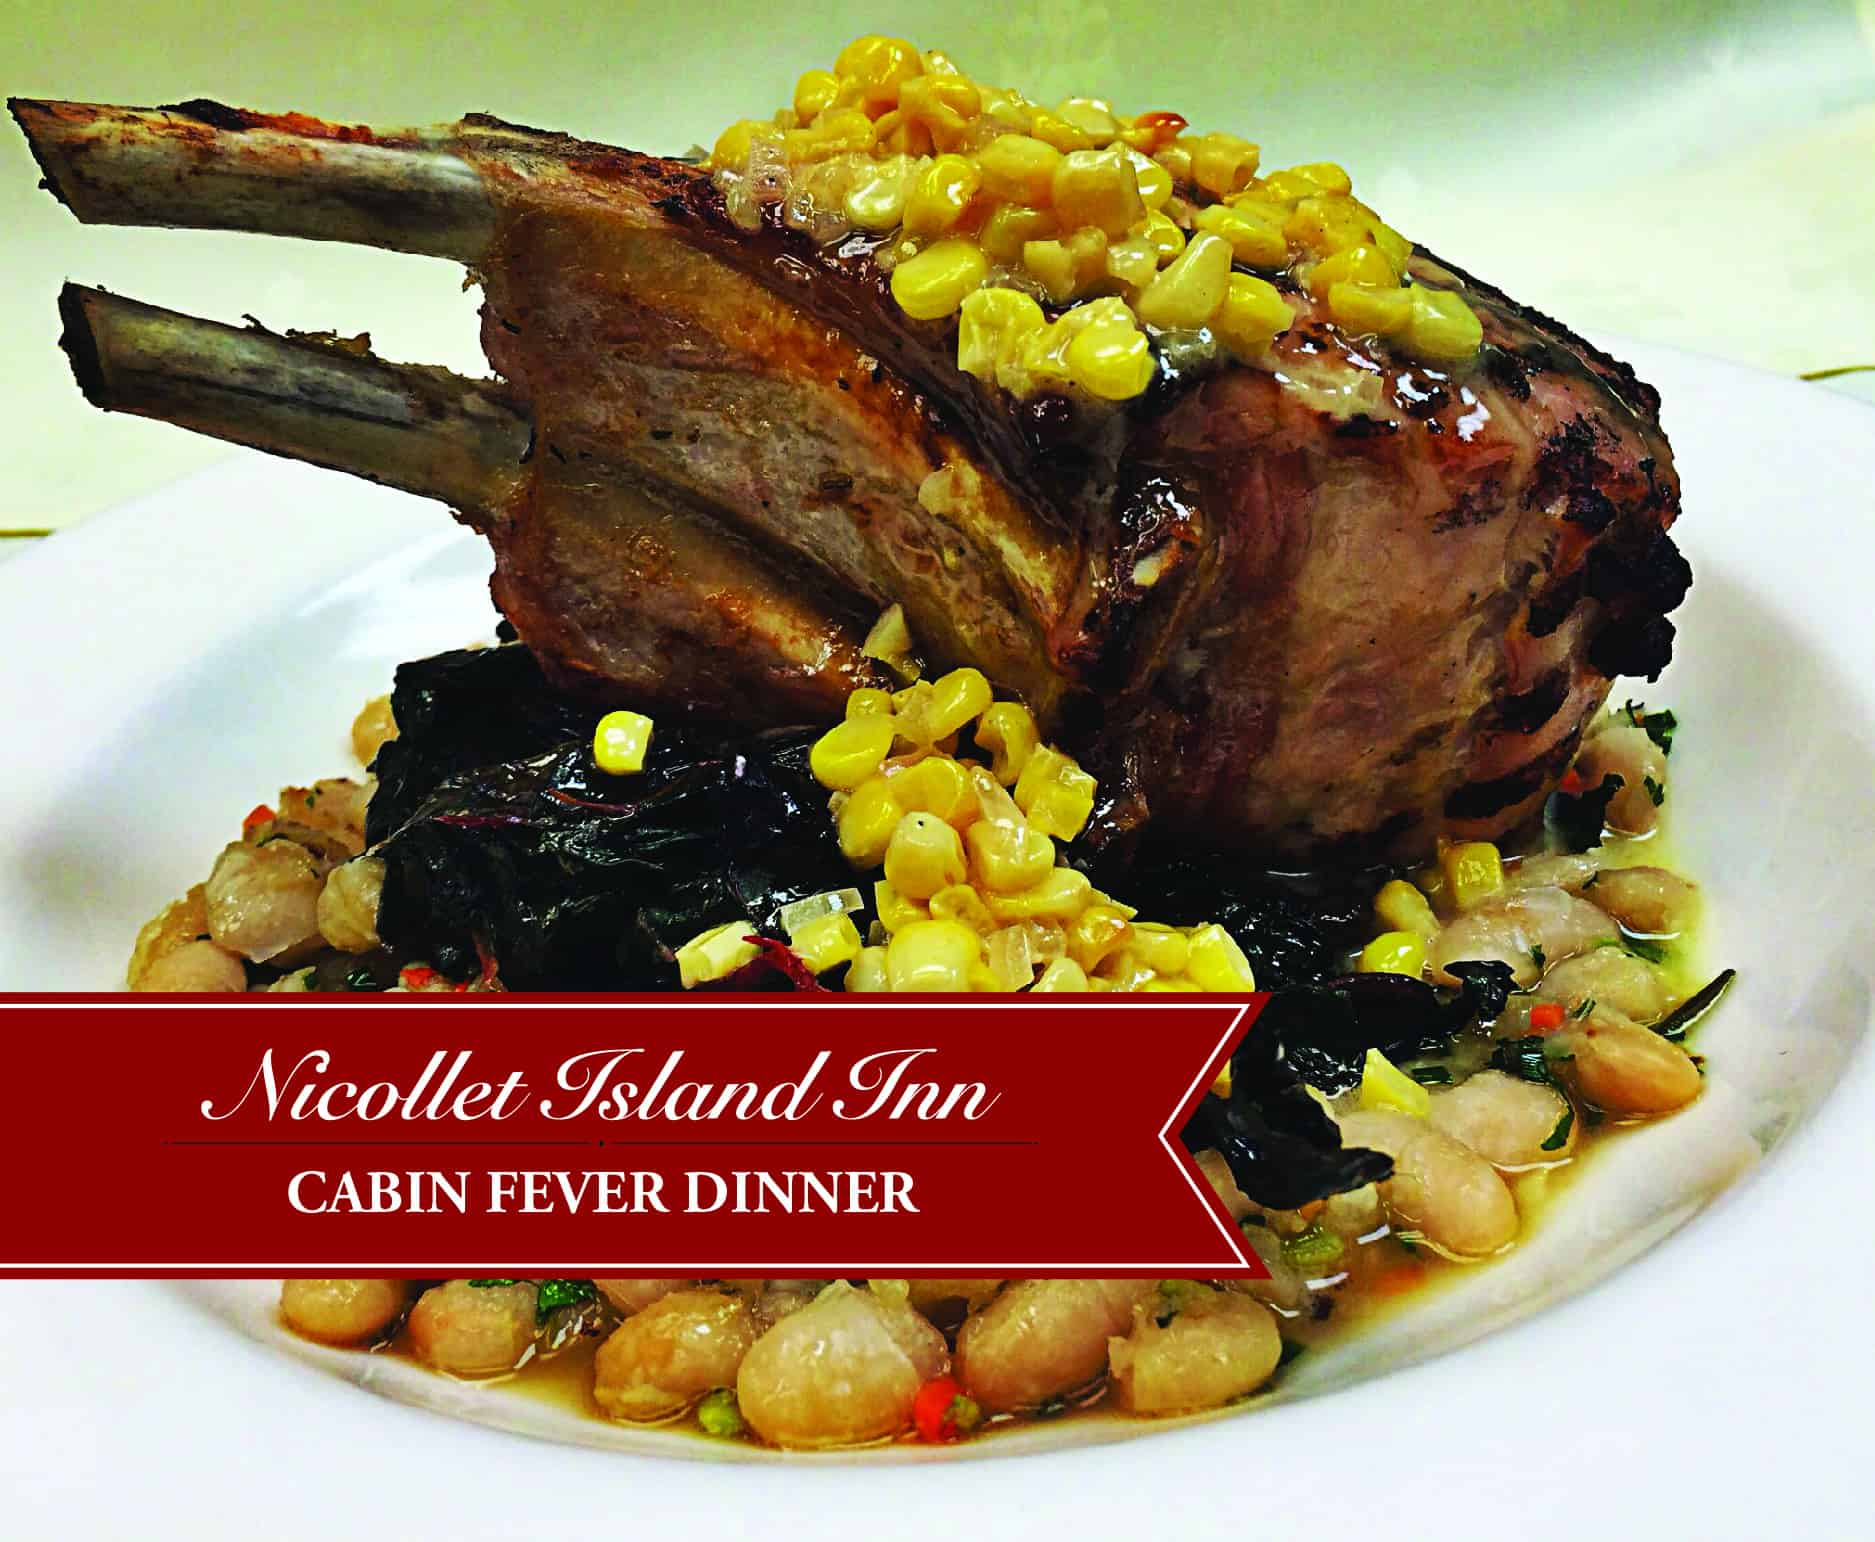 cabin fever dinner image-02